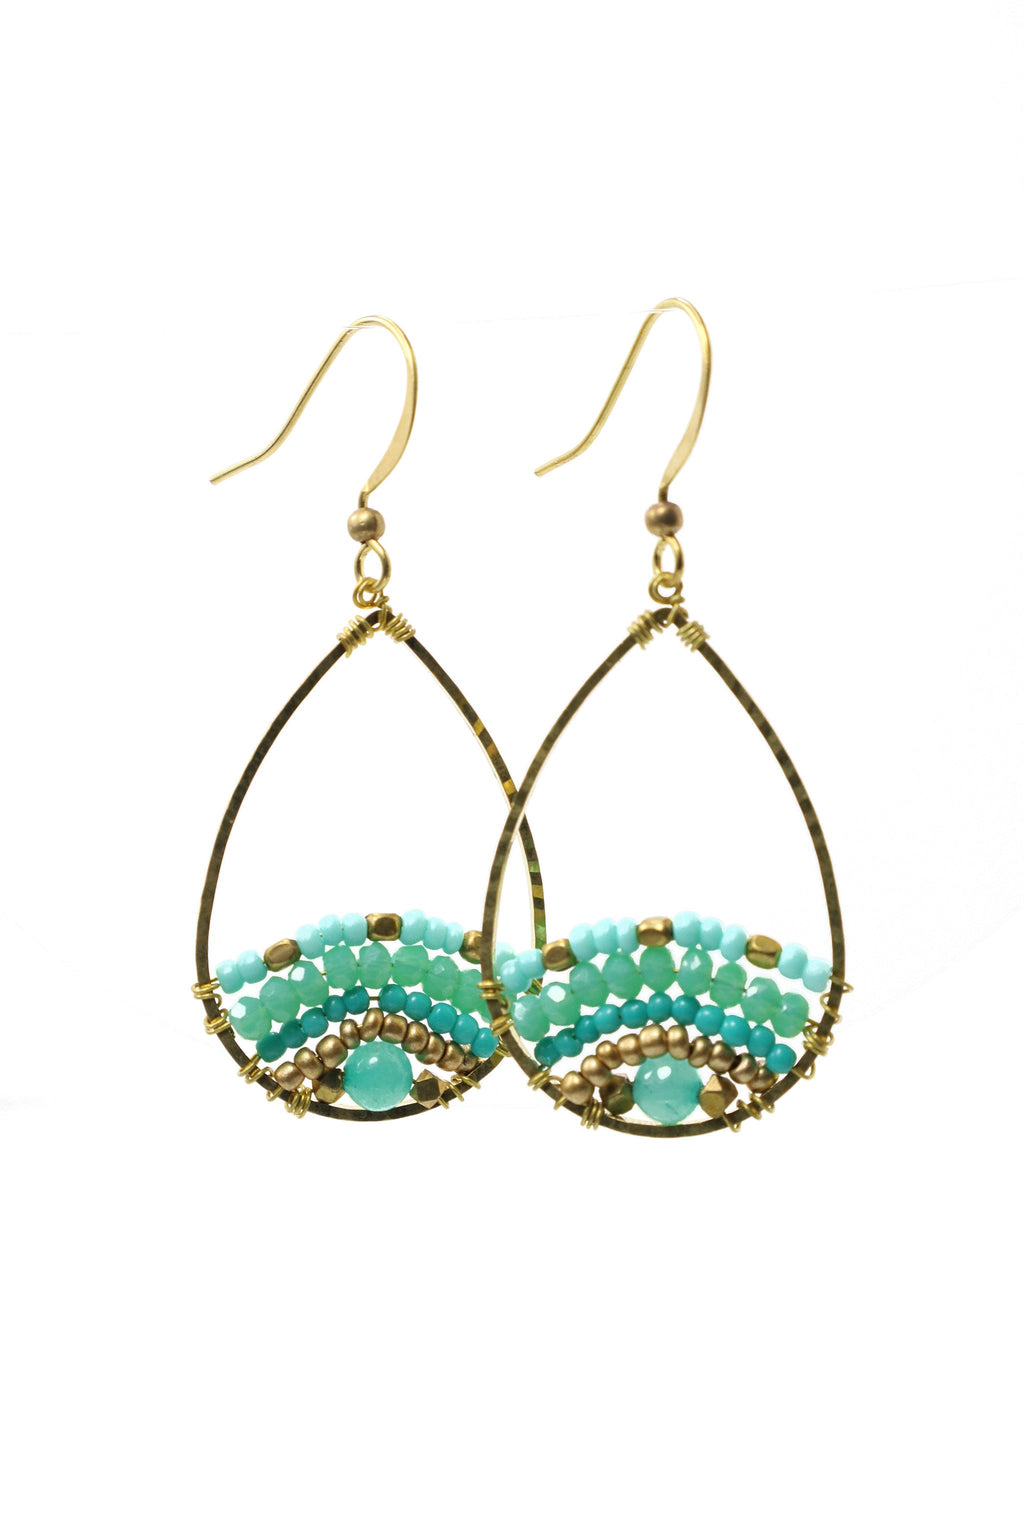 These are small teardrop island style beaded earrings with fantastic shades of turquoise.  They feature Afgani style tube beads, brass and acrylic beads. They are handmade with love in Thailand.   This is a Fairtrade Product.